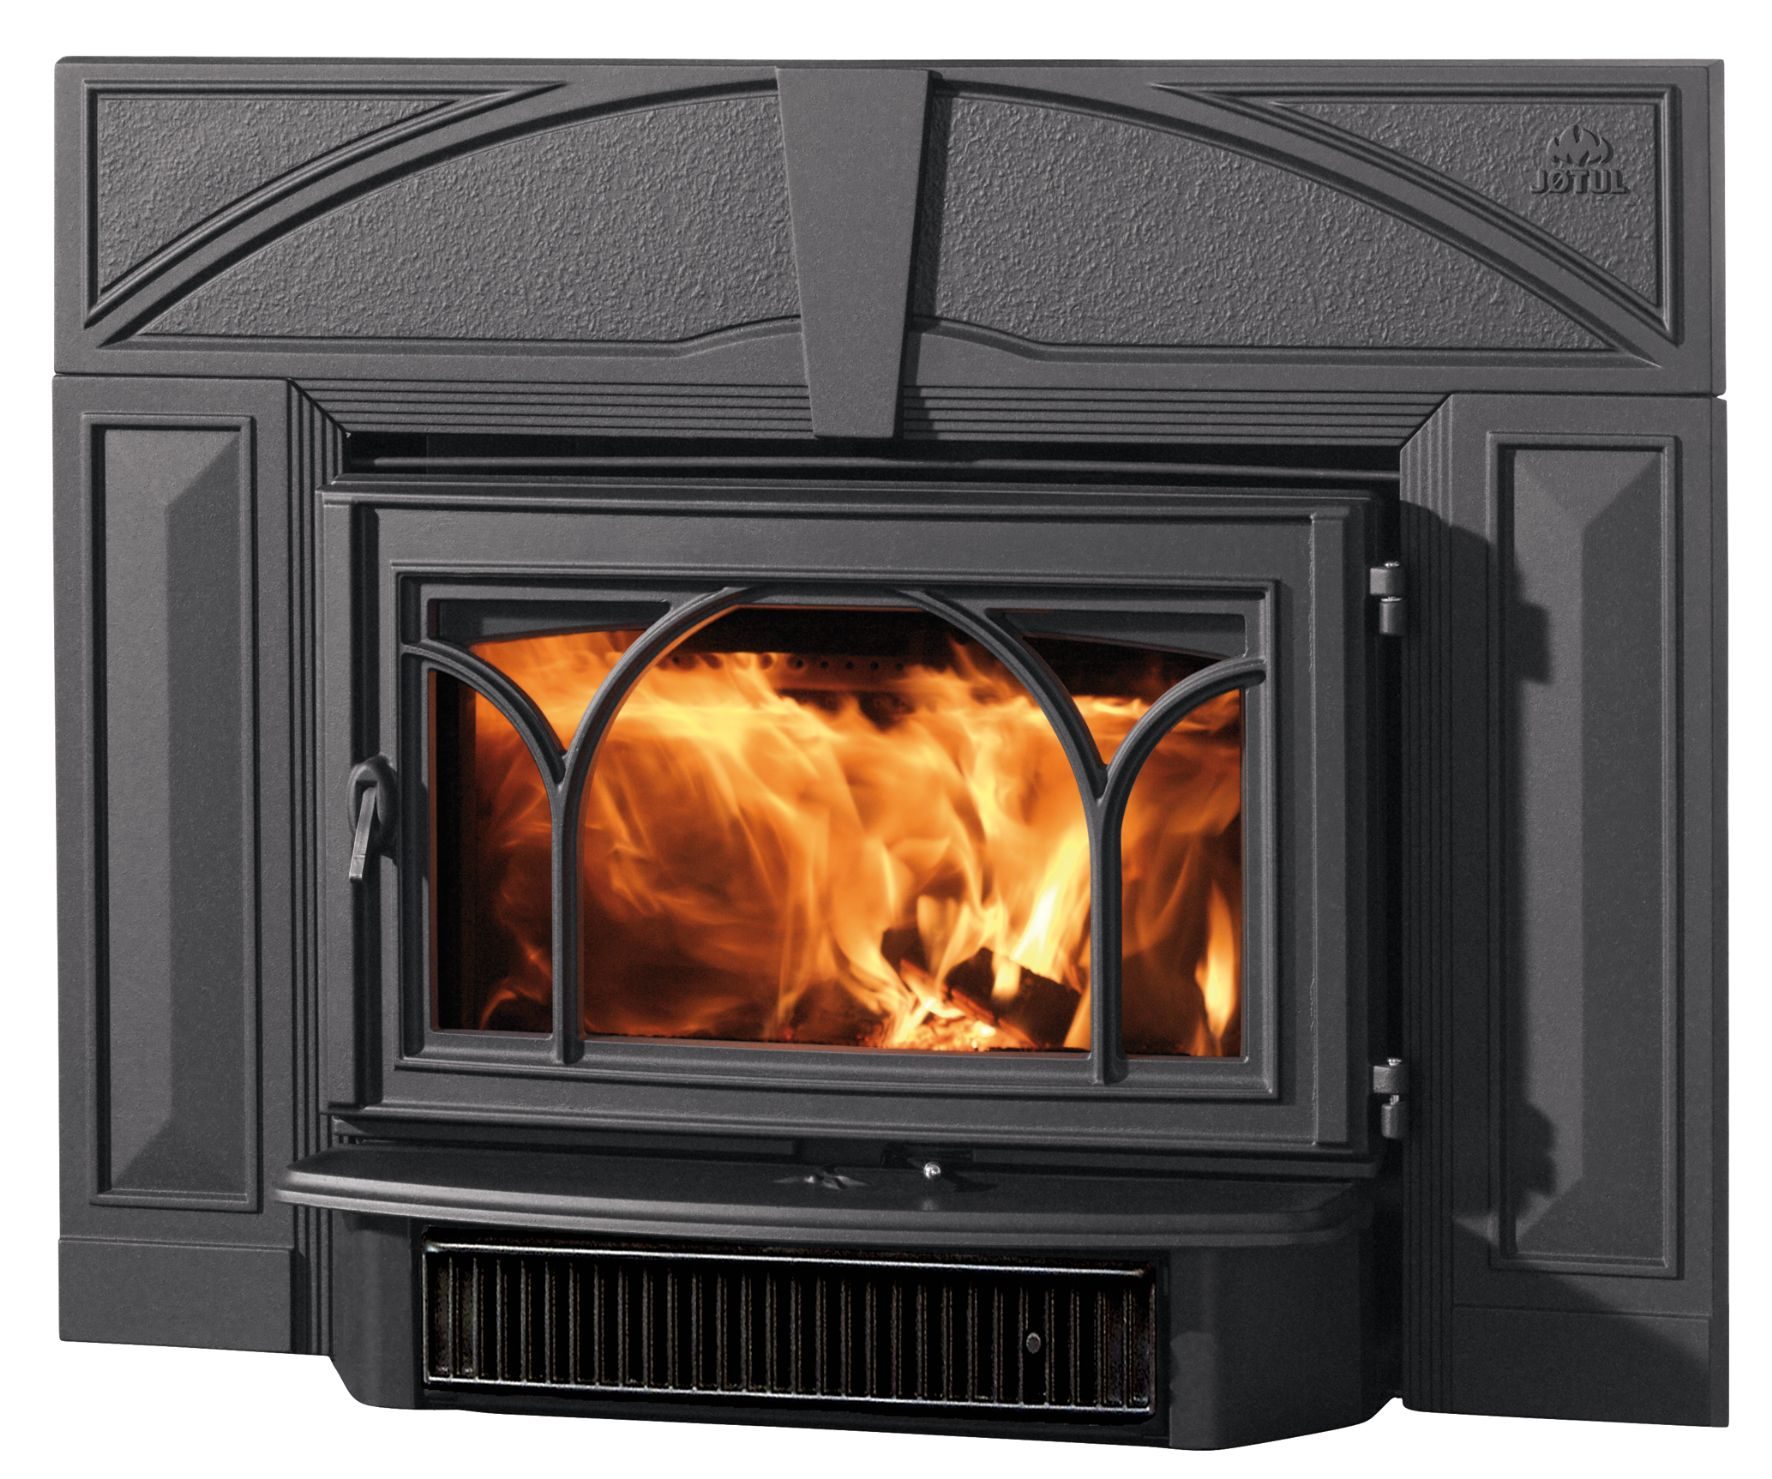 jotul kennebec c 450 is a medium sized wood fireplace insert able to